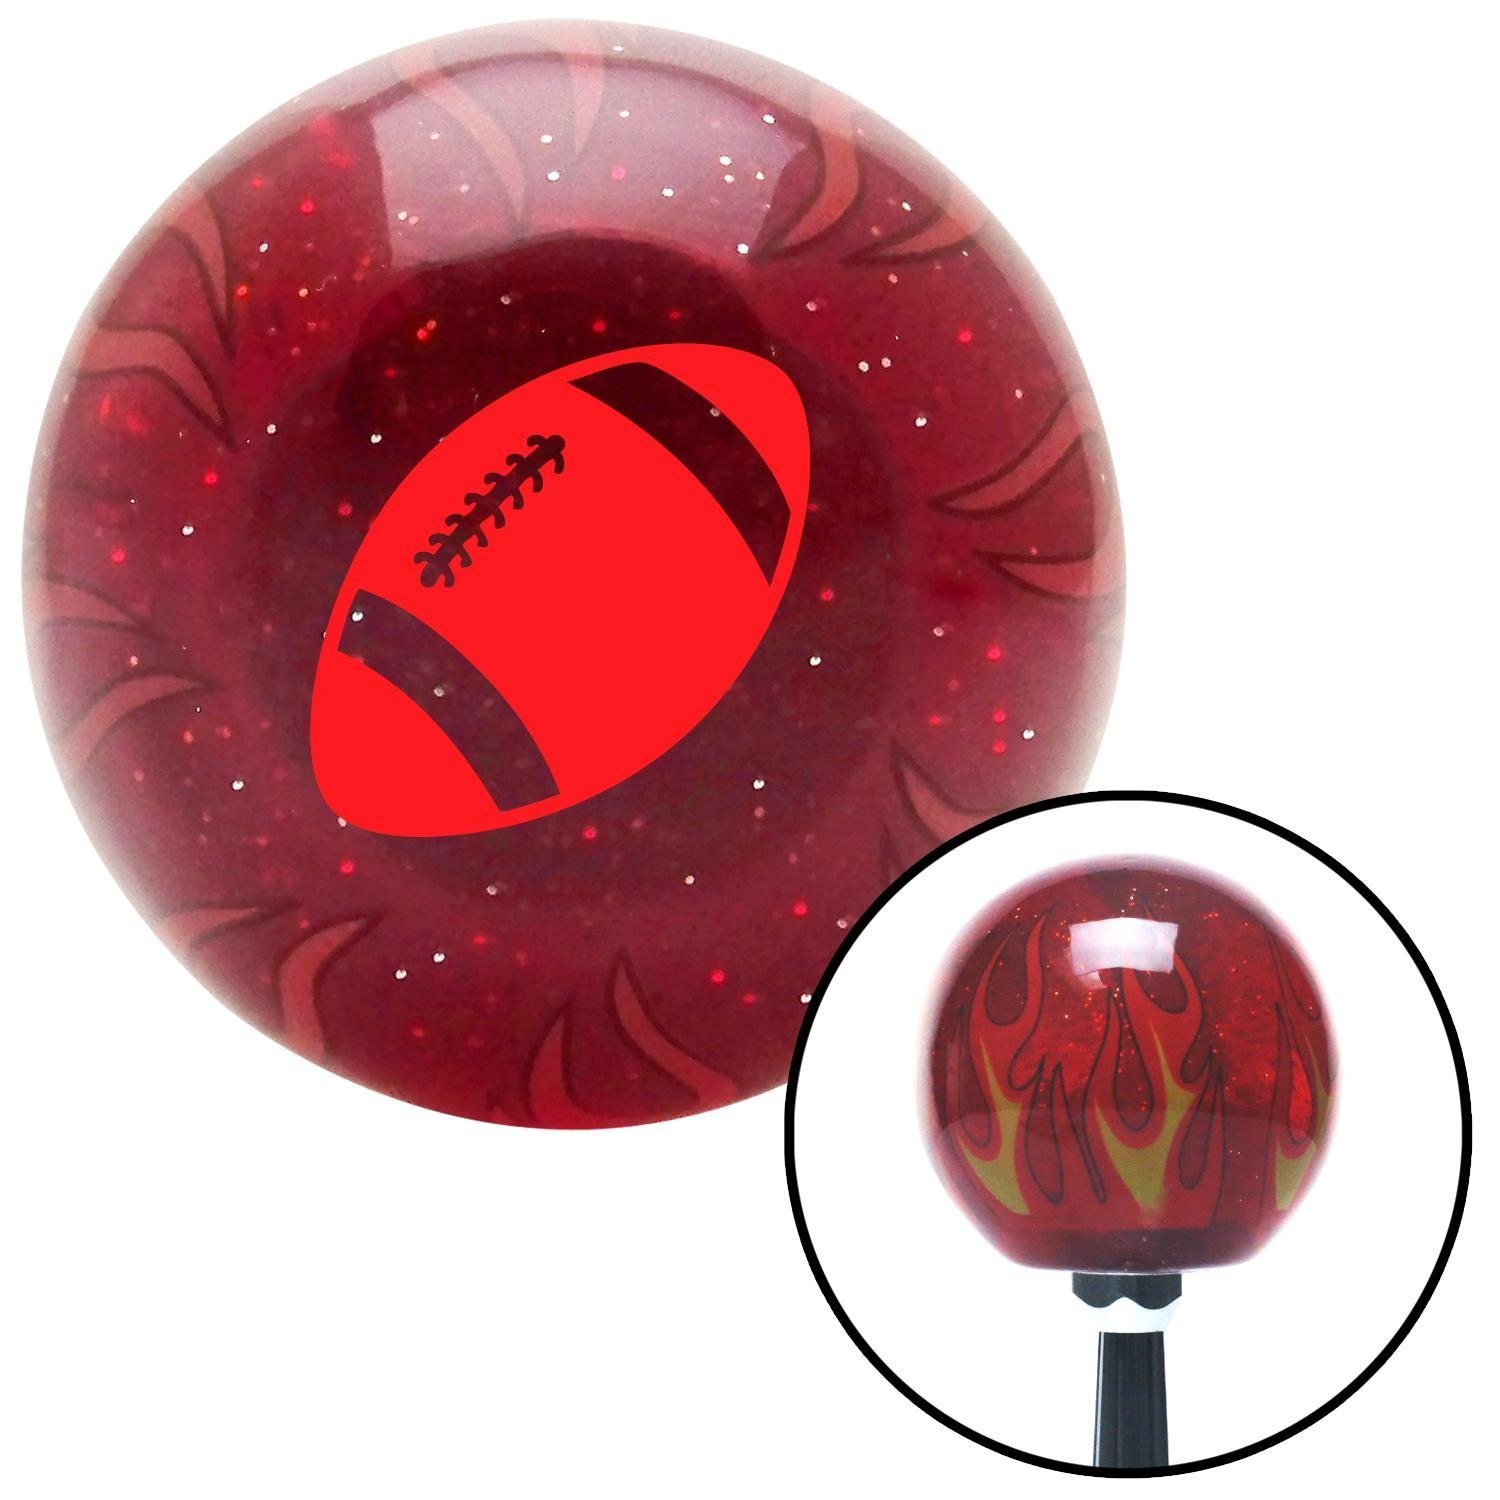 American Shifter 239516 Red Flame Metal Flake Shift Knob with M16 x 1.5 Insert Red Football